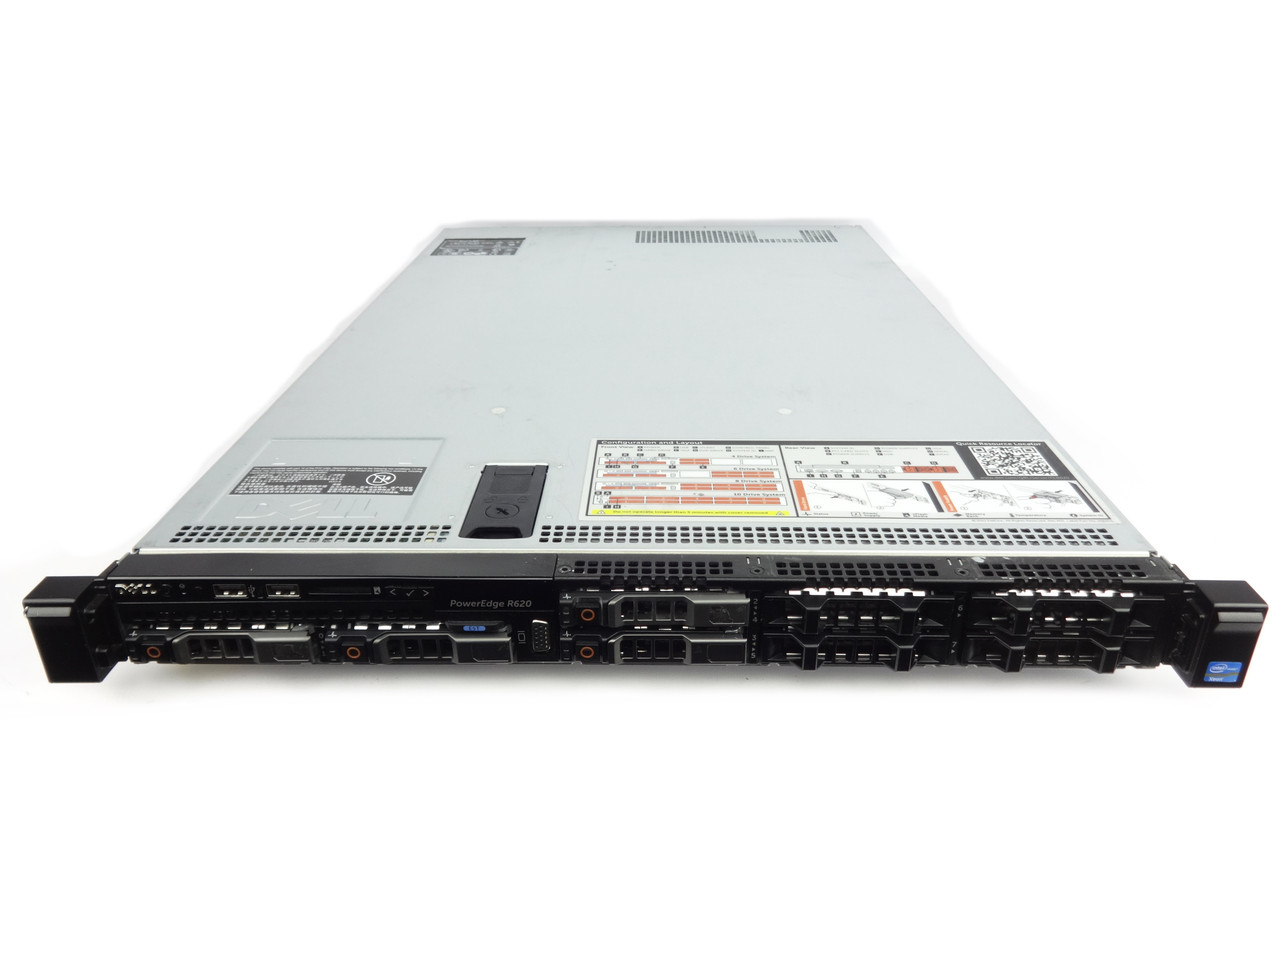 """Dell Poweredge R620 8x 2.5"""" Server Build to Order"""